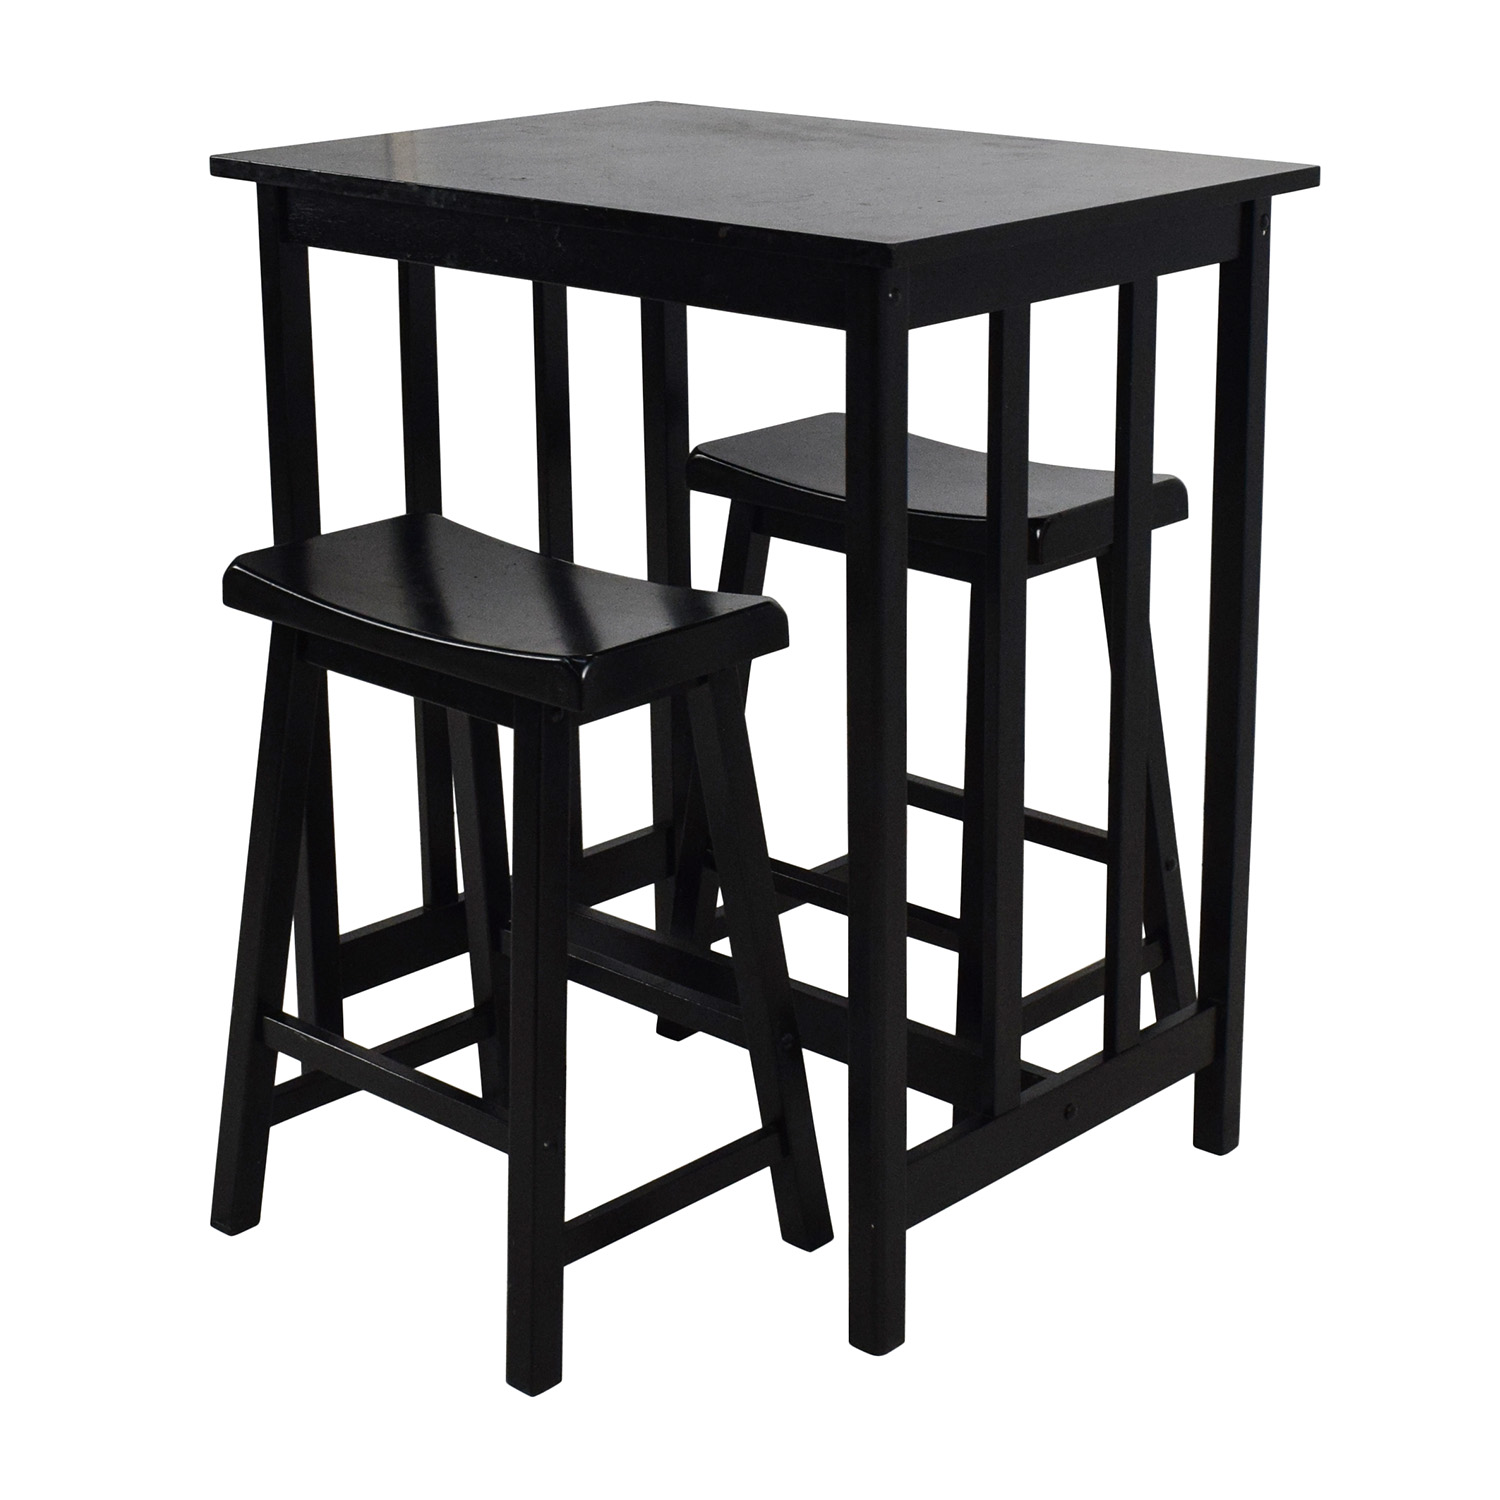 tall kitchen table set coupon - Tall Kitchen Table Chairs